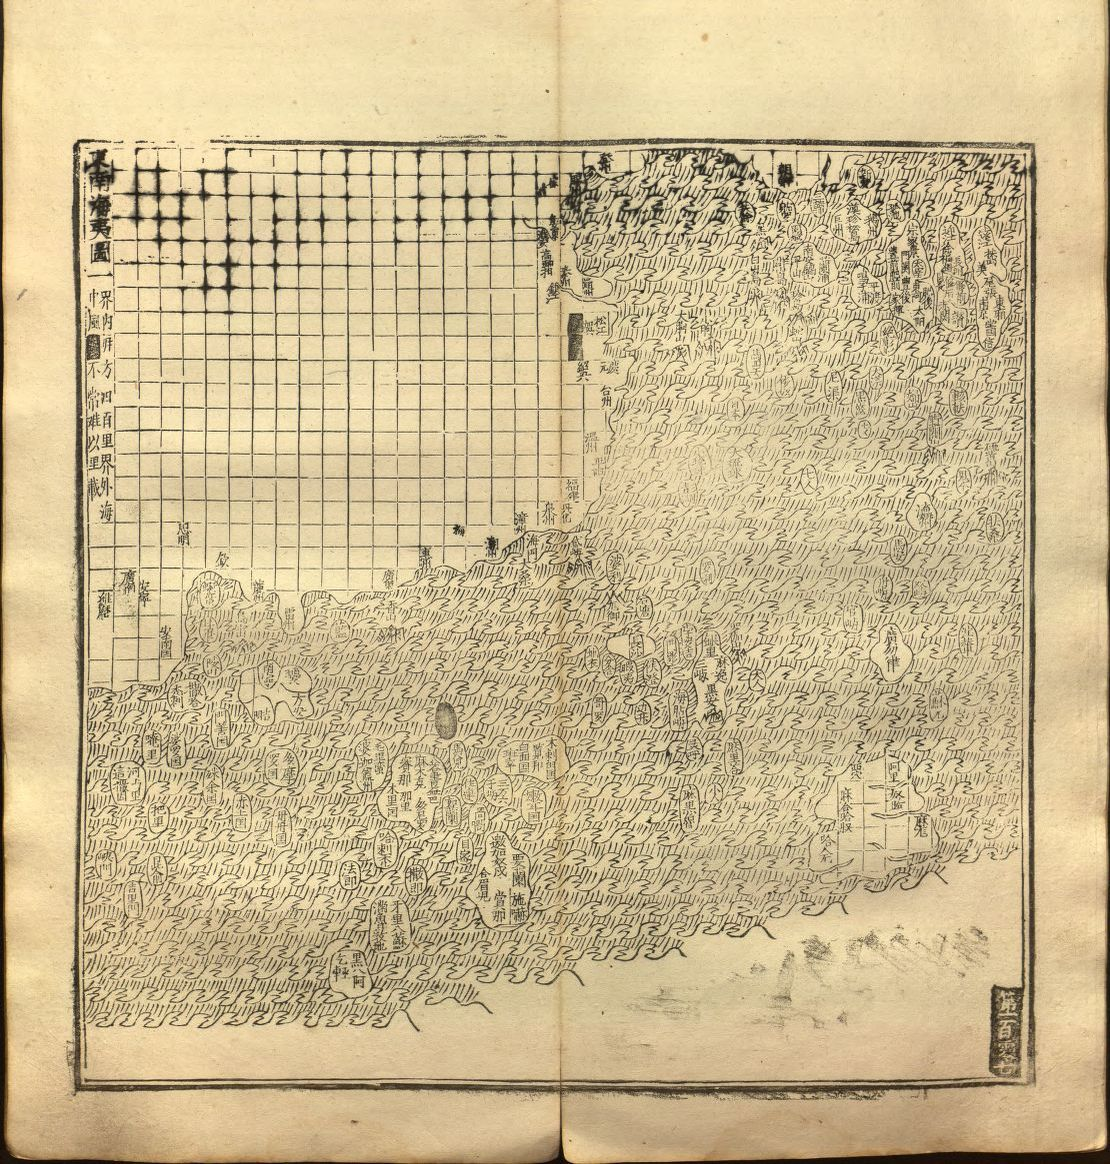 Hand drawn map with a grid showing land and coastline